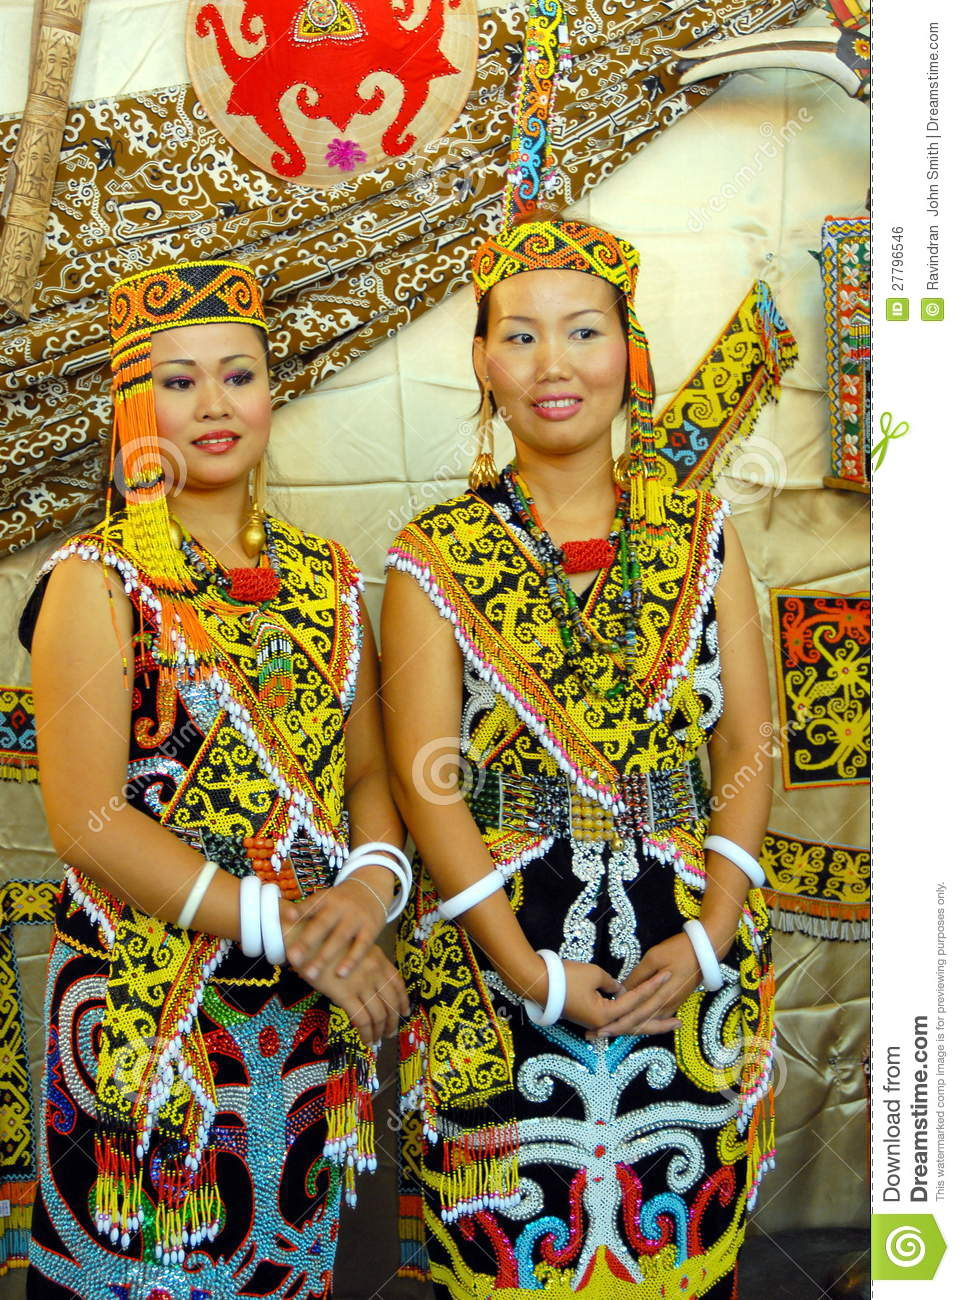 11 Orang Ulu Woman Photos Free Royalty Free Stock Photos From Dreamstime